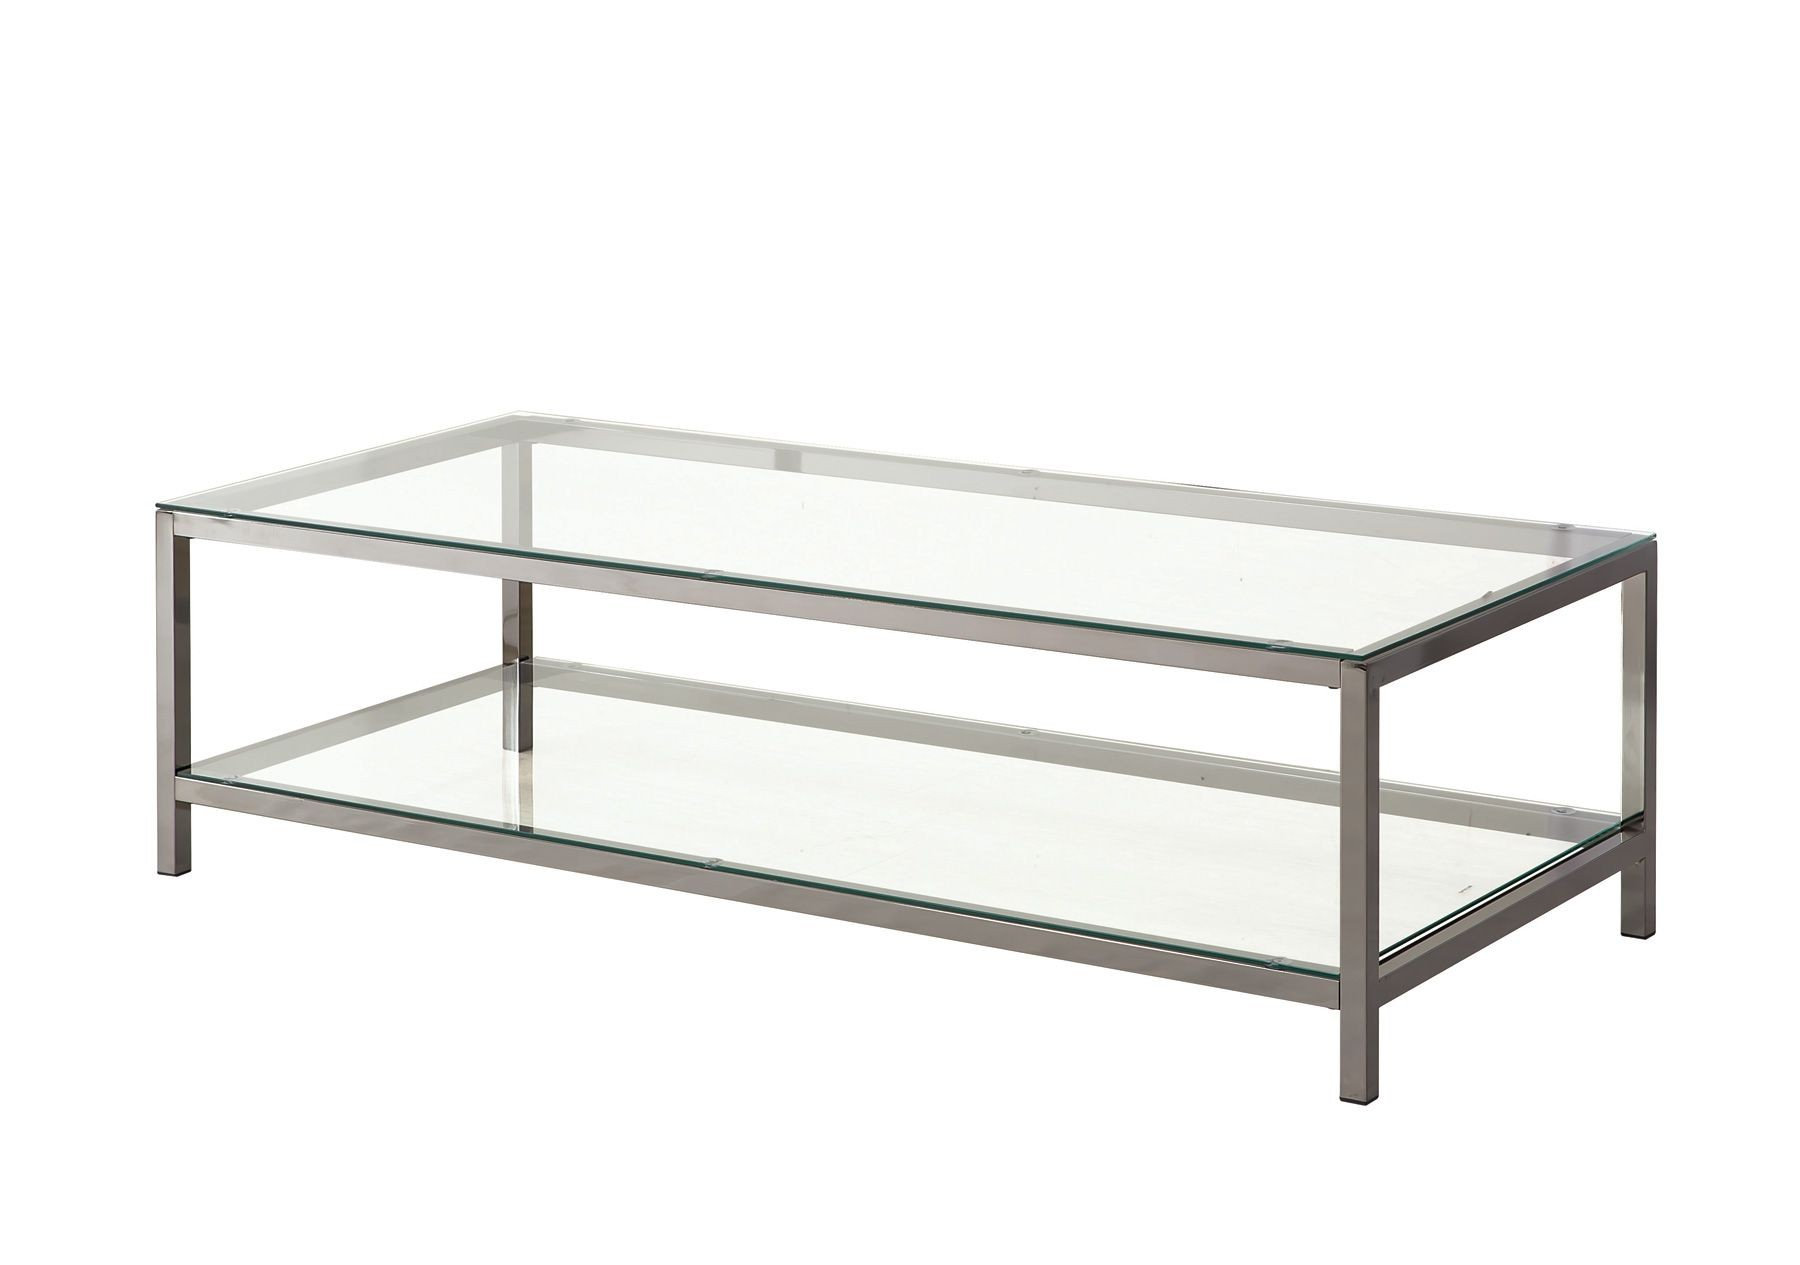 720228 Black Nickel Rectangular Coffee Table From Coaster 720228 Coleman Furniture